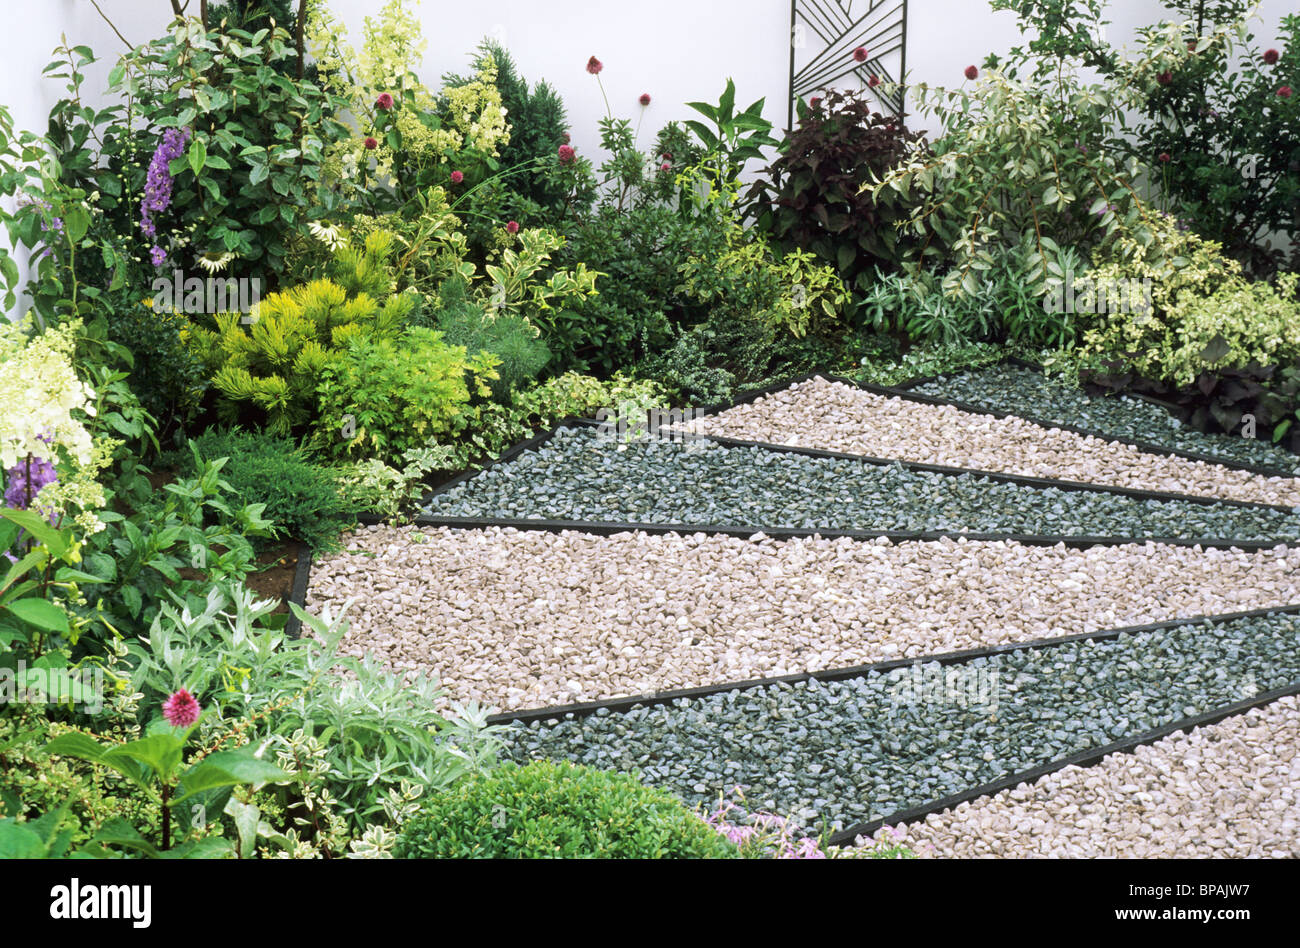 Genial Pebble, Coloured Gravel Garden, Sandringham Flower Show Floor Ground  Pattern Garden Design Designs Pebbles Contrast Contrasting